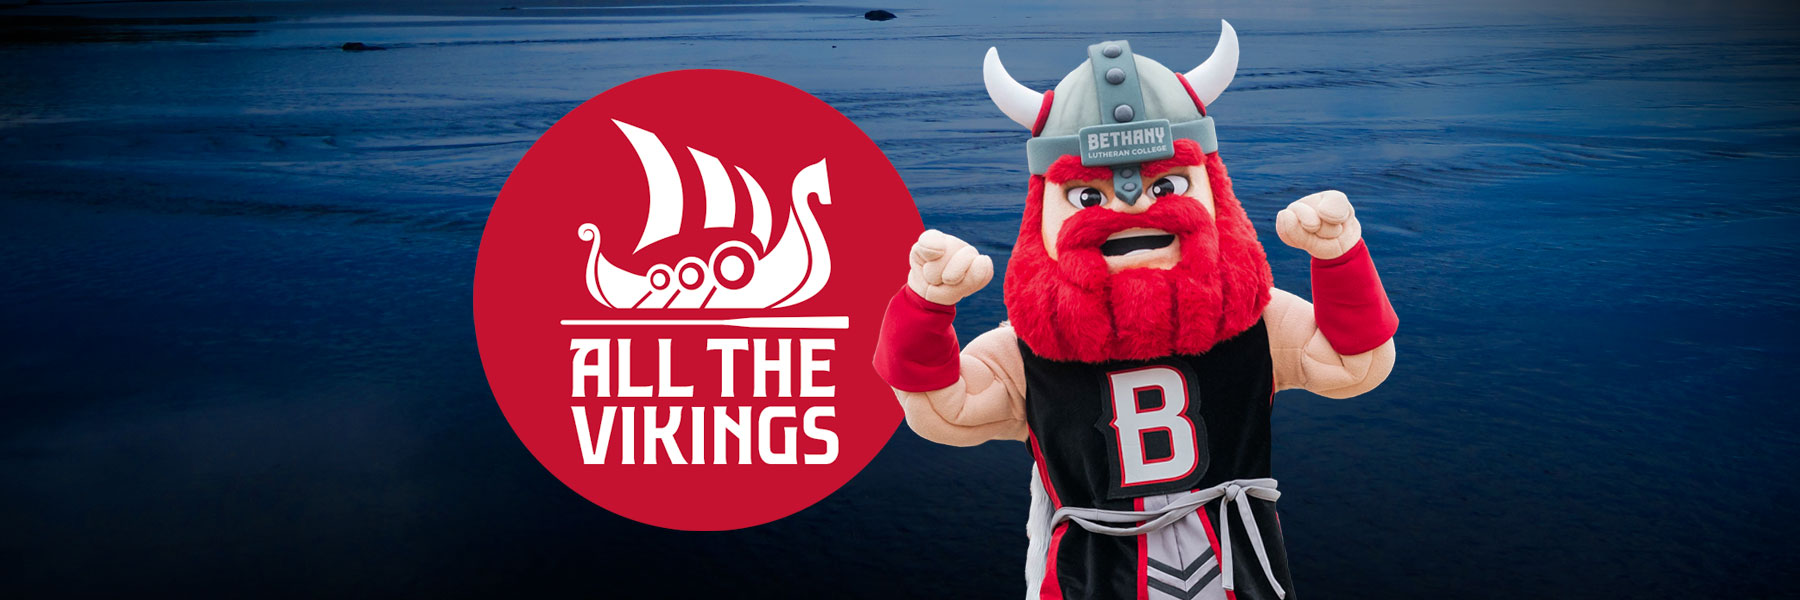 All the vikings logo on red with halvar the viking mascot of bethany lutheran college